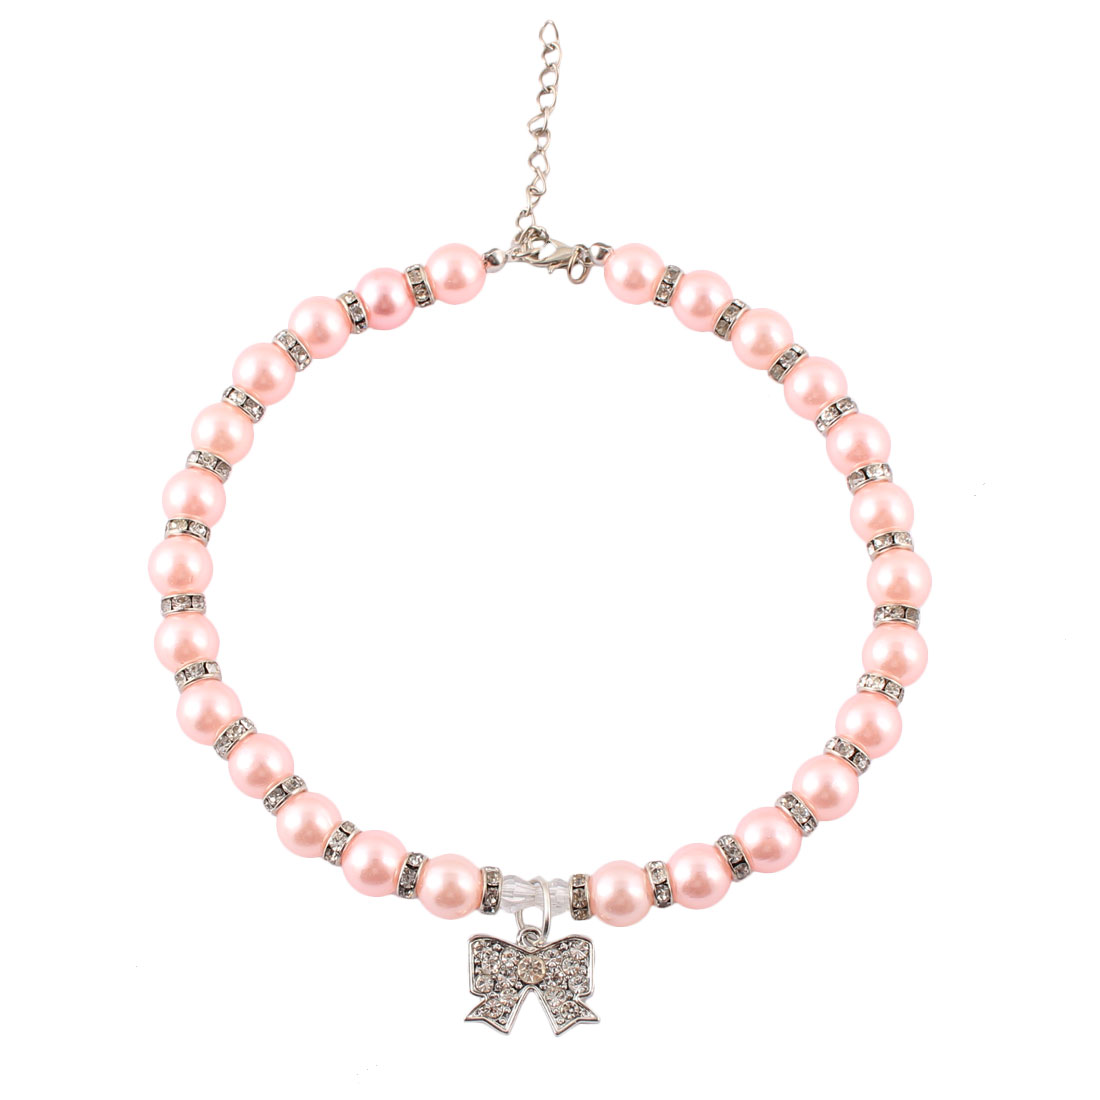 Puppy Metal Sparkle Rhinestone Round Beads Bowknot Pendent Adjustable Pet Necklace Light Pink